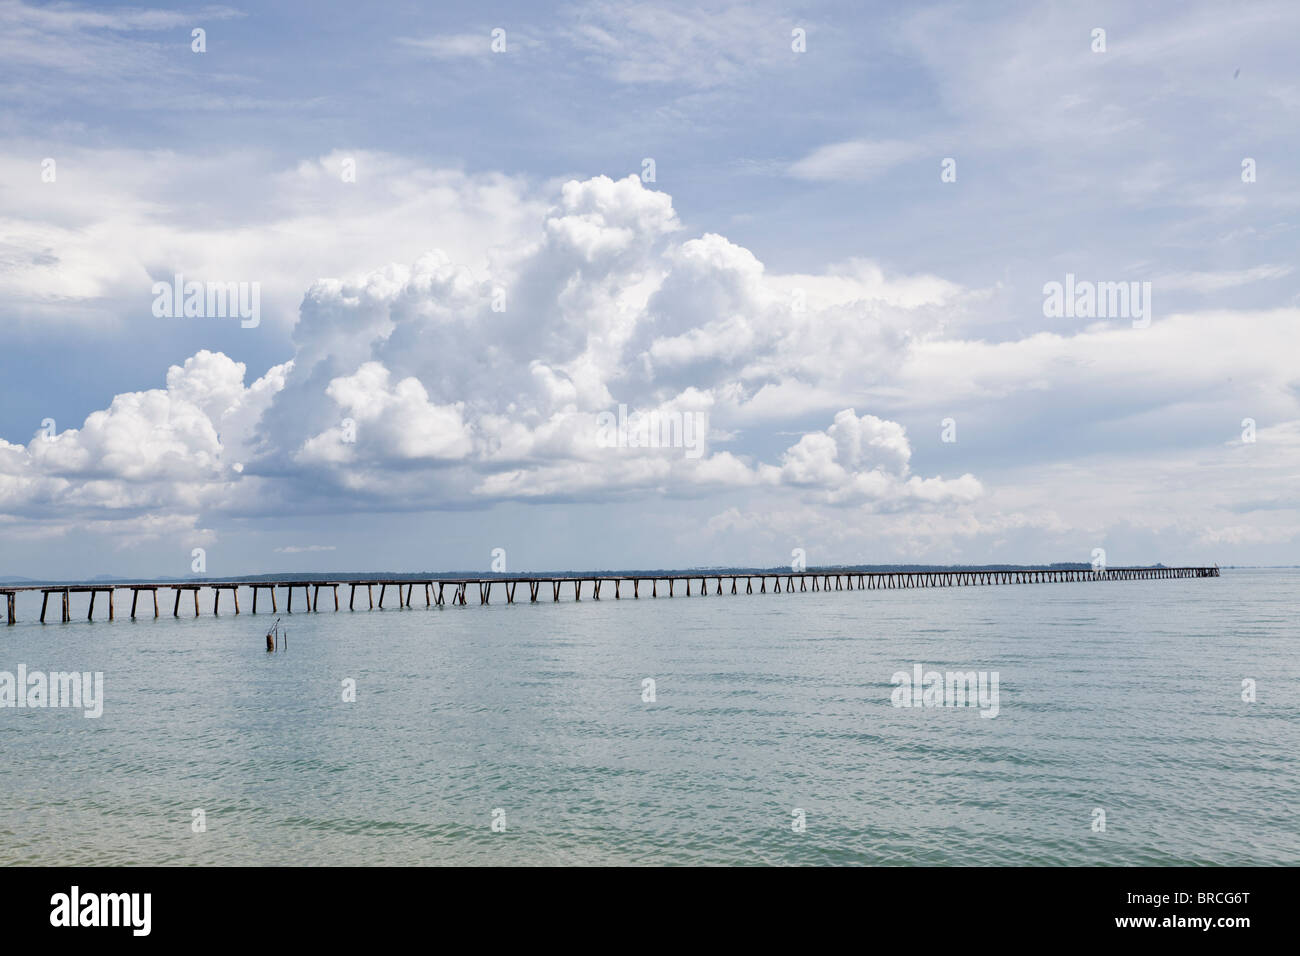 Wooden jetty on Libaran Island, Sabah, Borneo - Stock Image